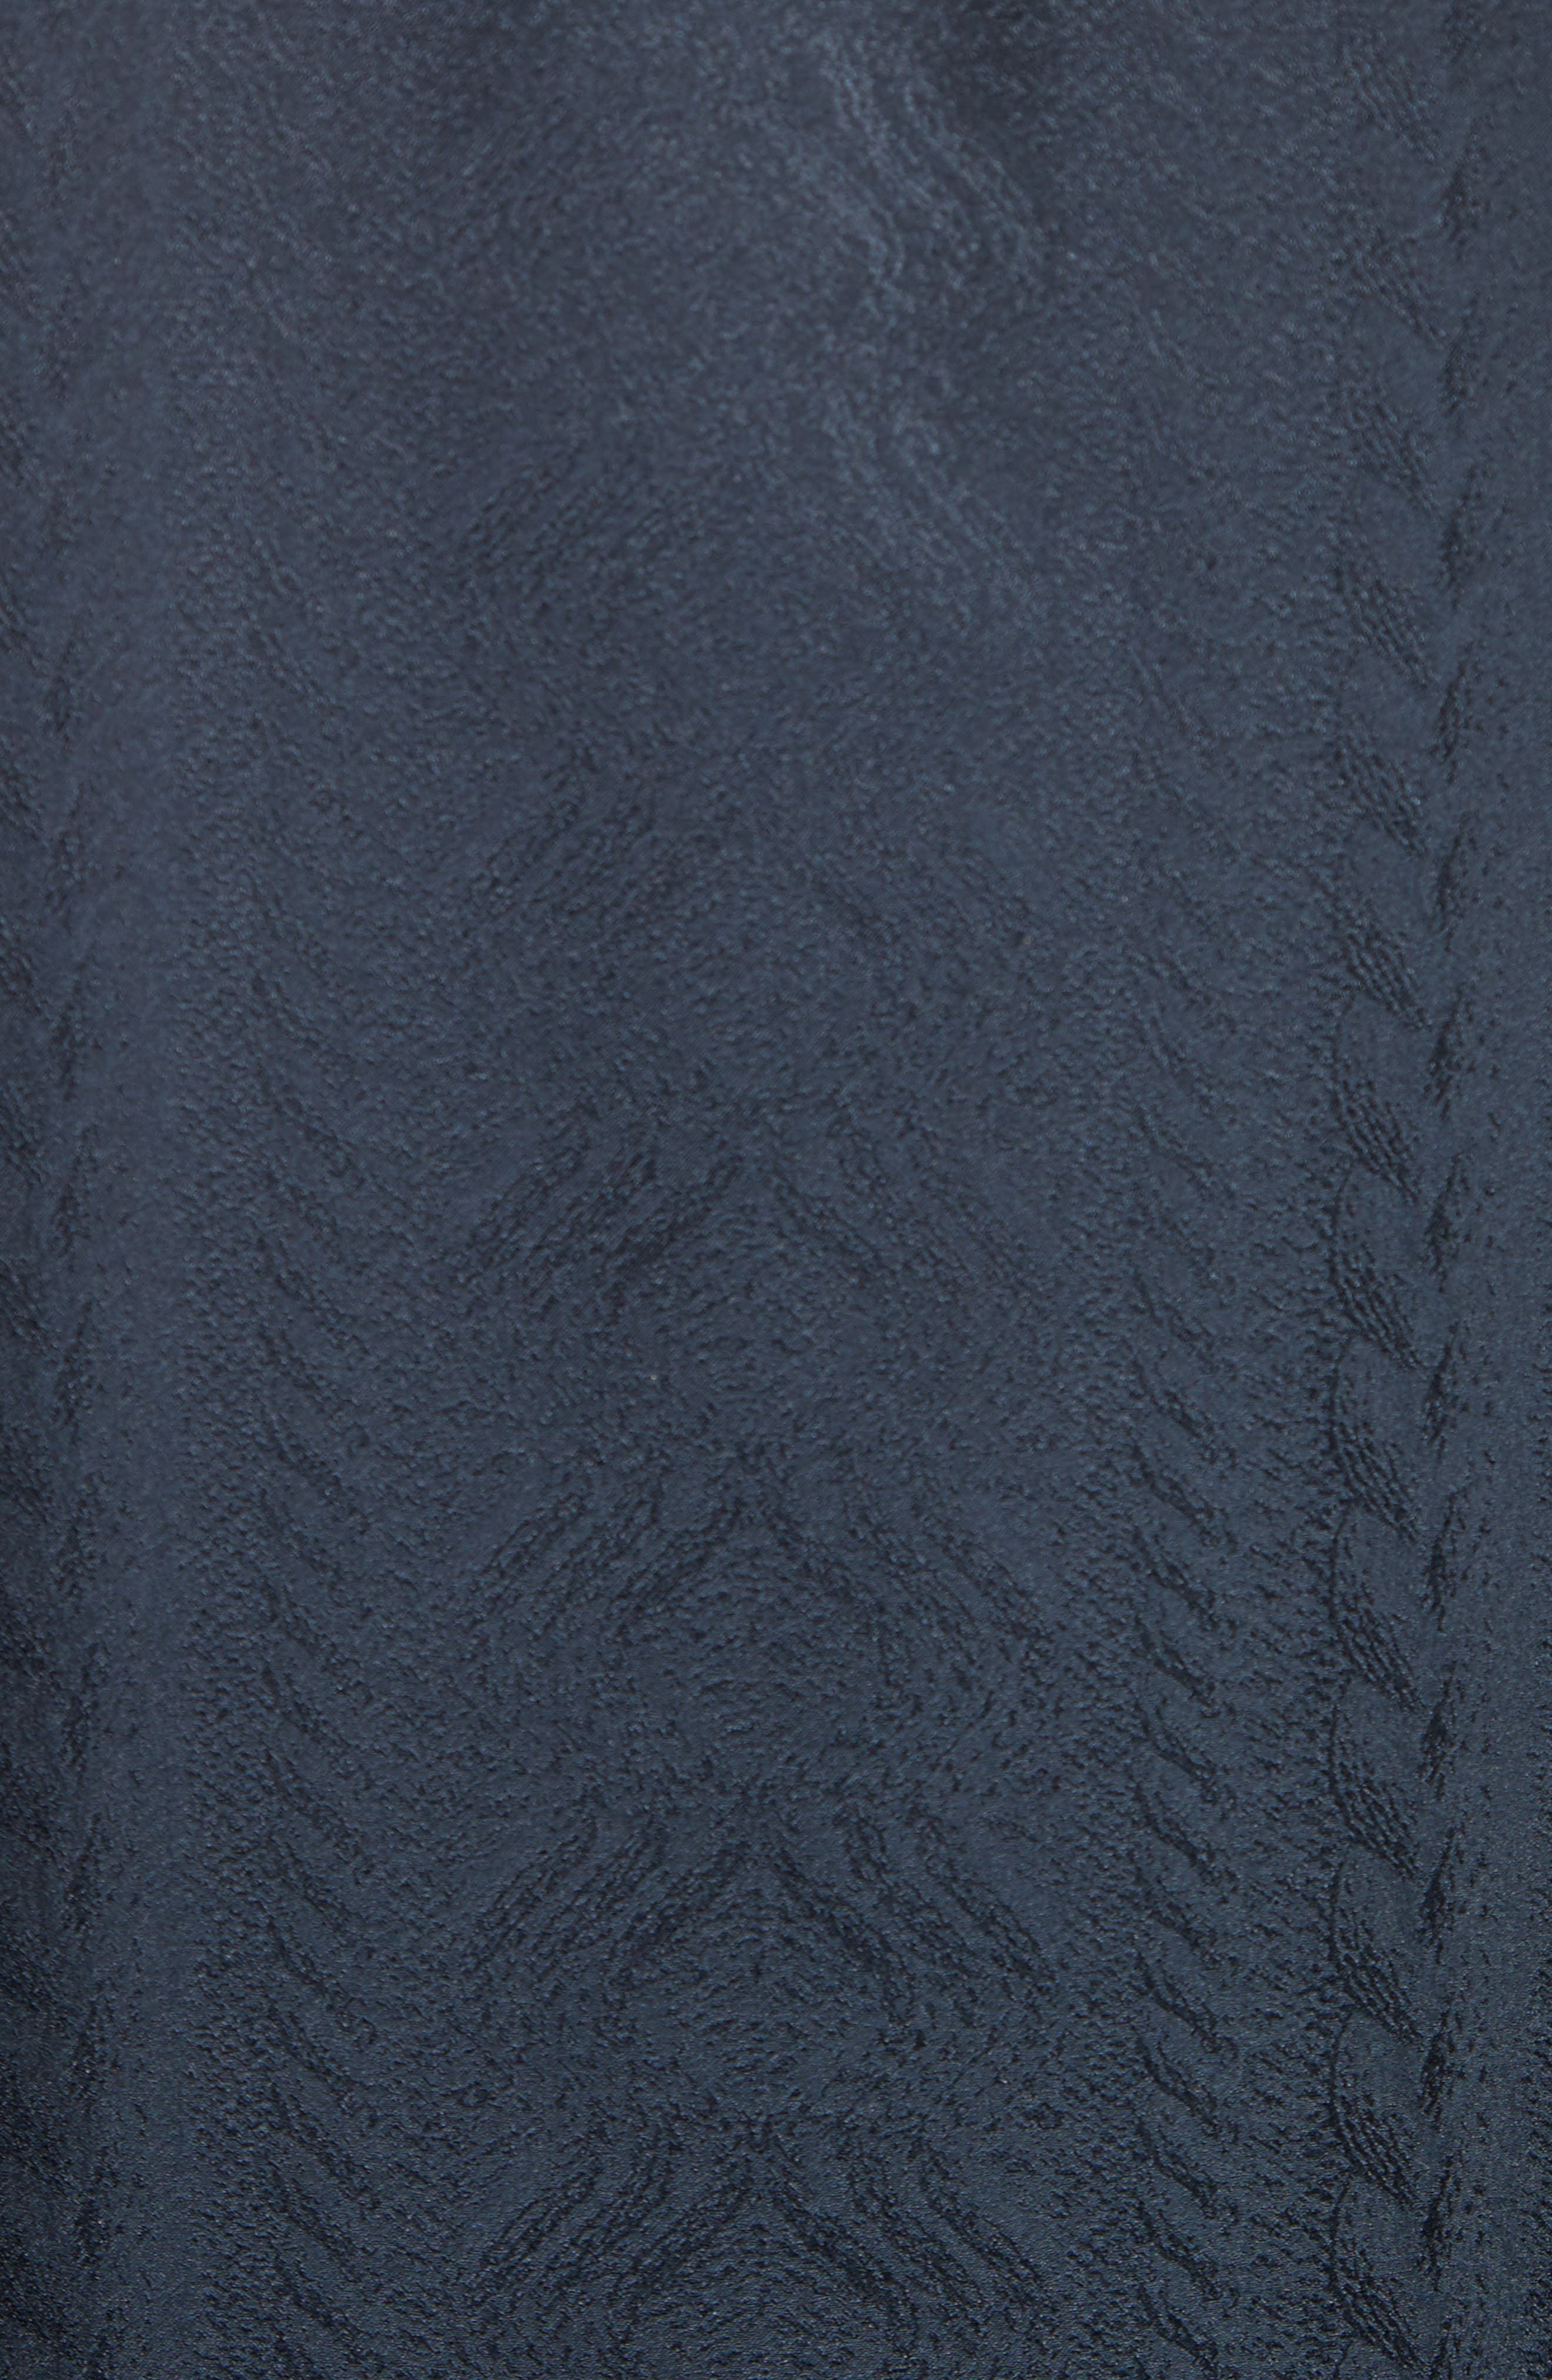 Embroidered Silk Jacquard Blouse,                             Alternate thumbnail 3, color,                             Midnight